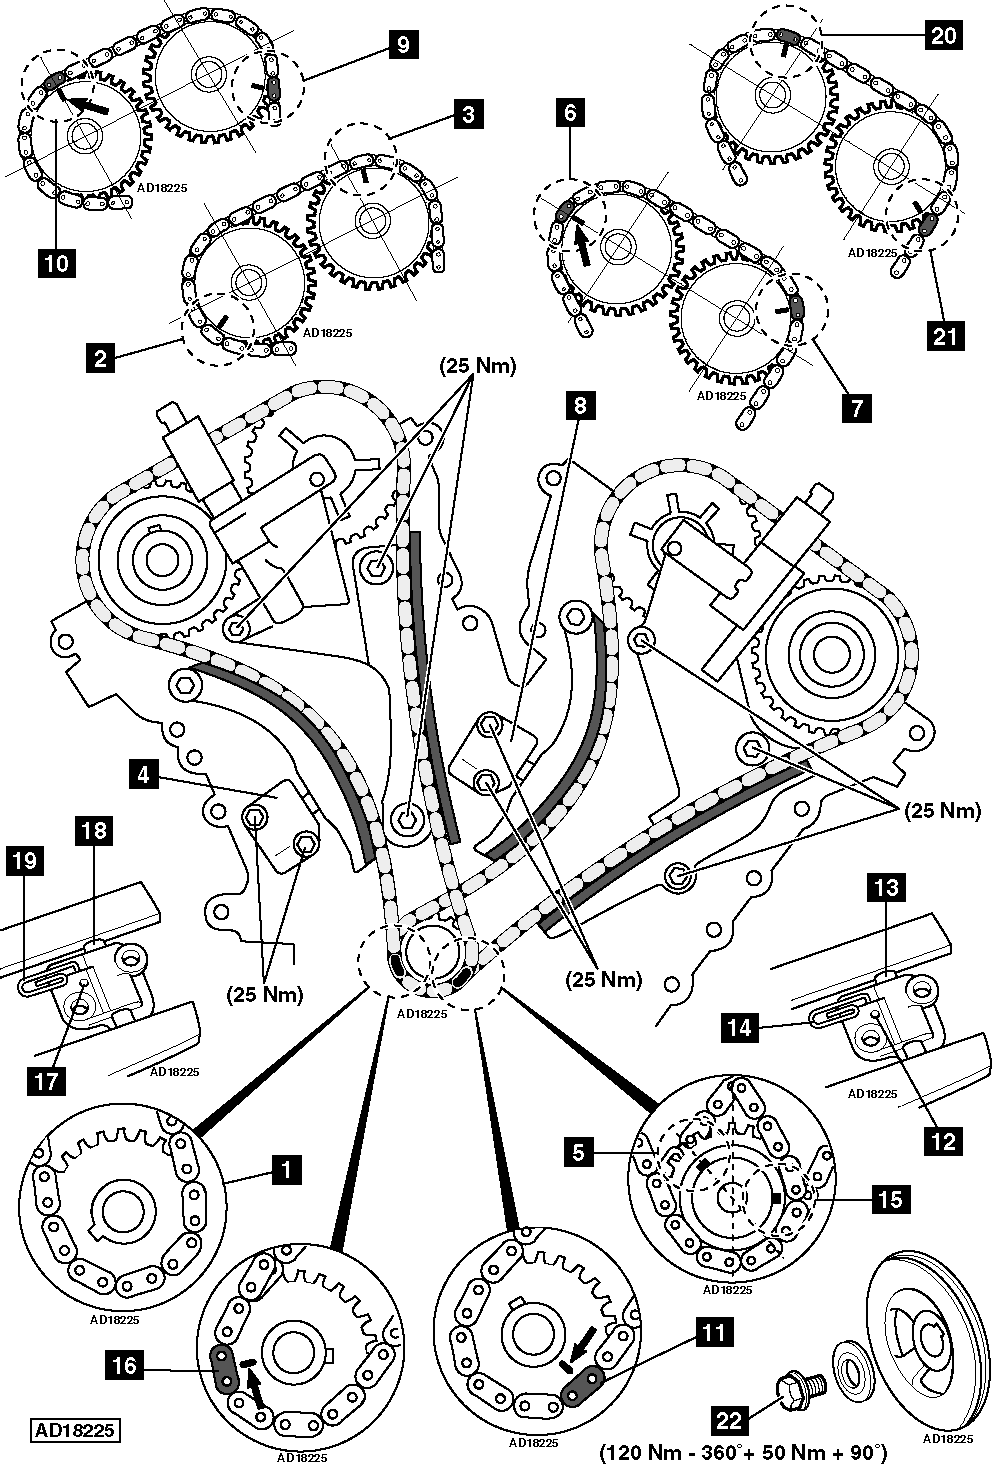 jaguar x type engine diagram ns 0959  2003 jaguar x type v6 engine diagram free diagram  jaguar x type v6 engine diagram